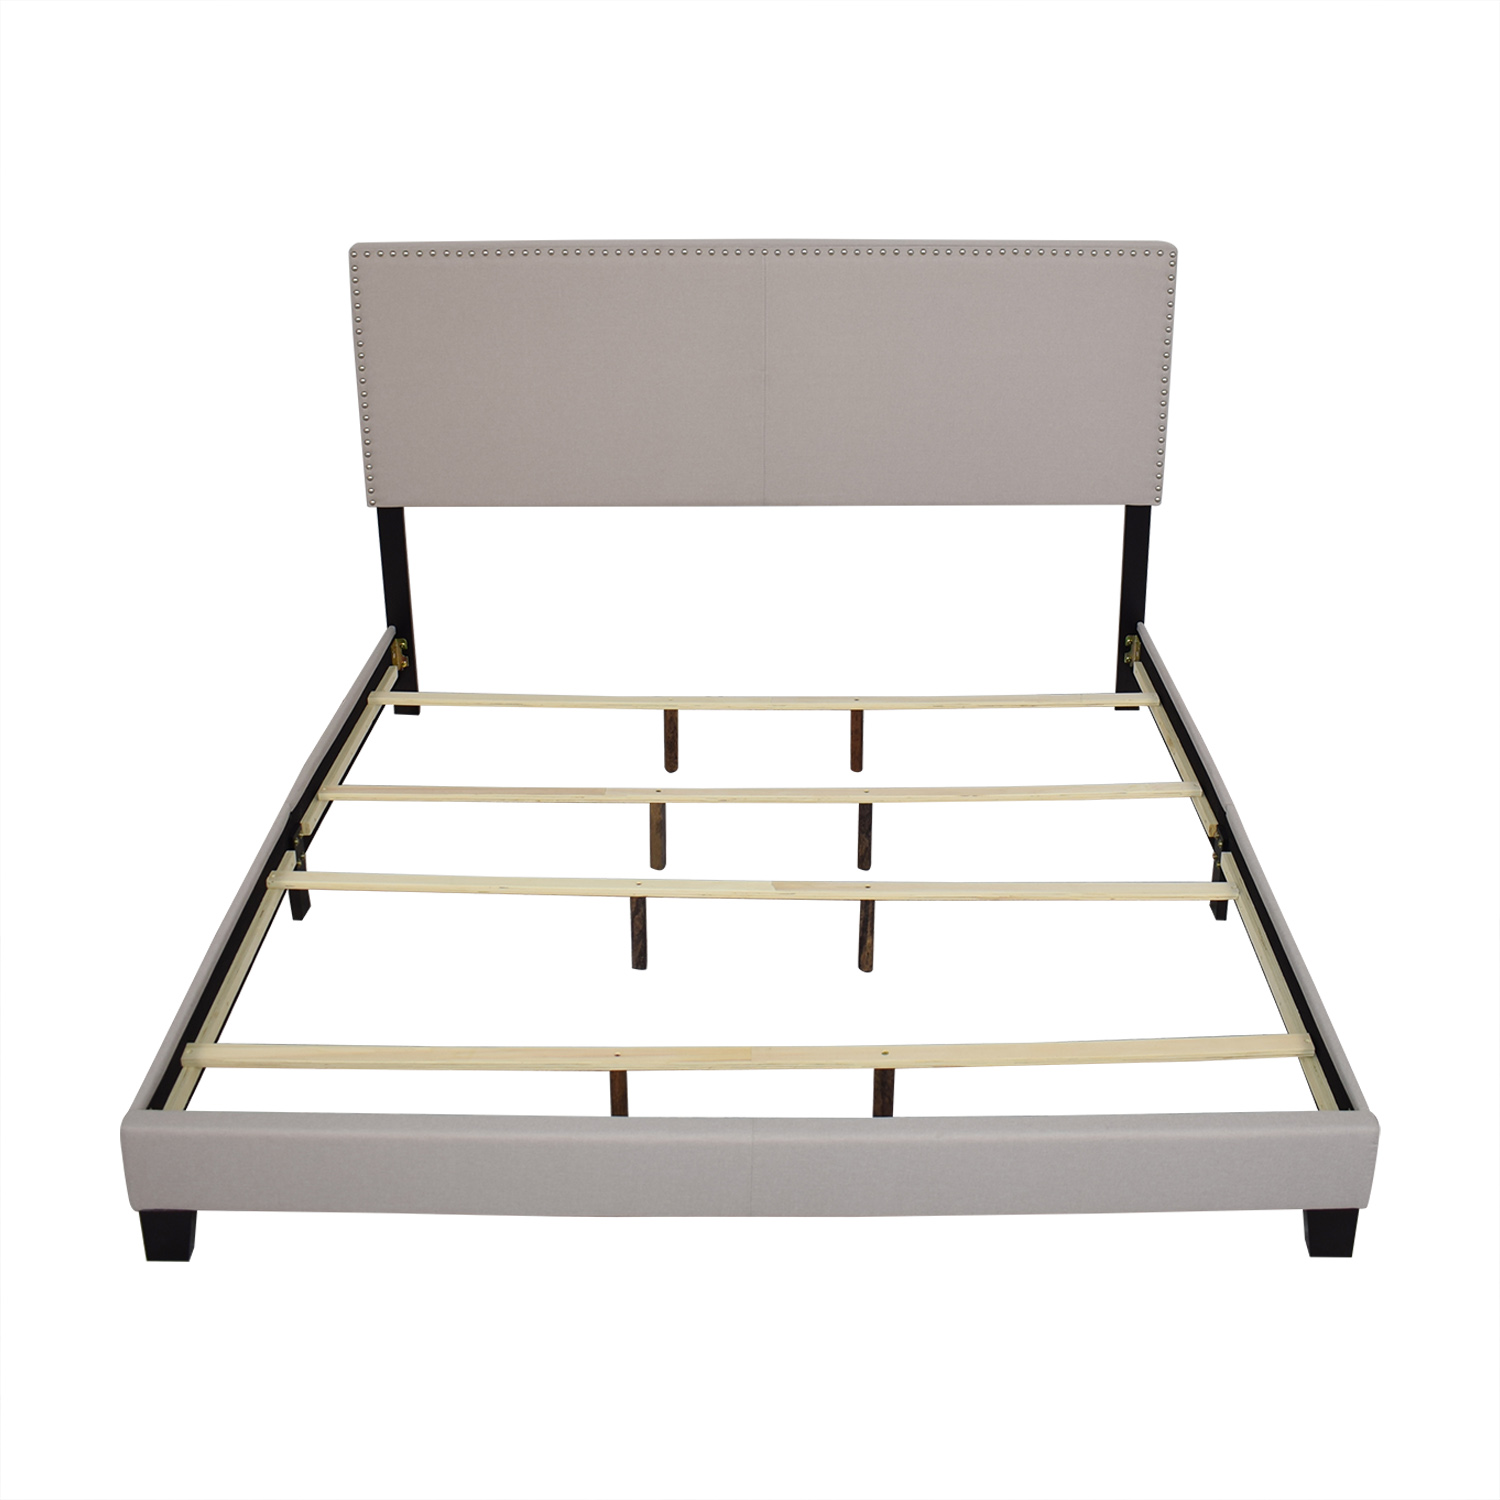 shop Raymour & Flanigan Platform King Linen Bed Raymour & Flanigan Beds